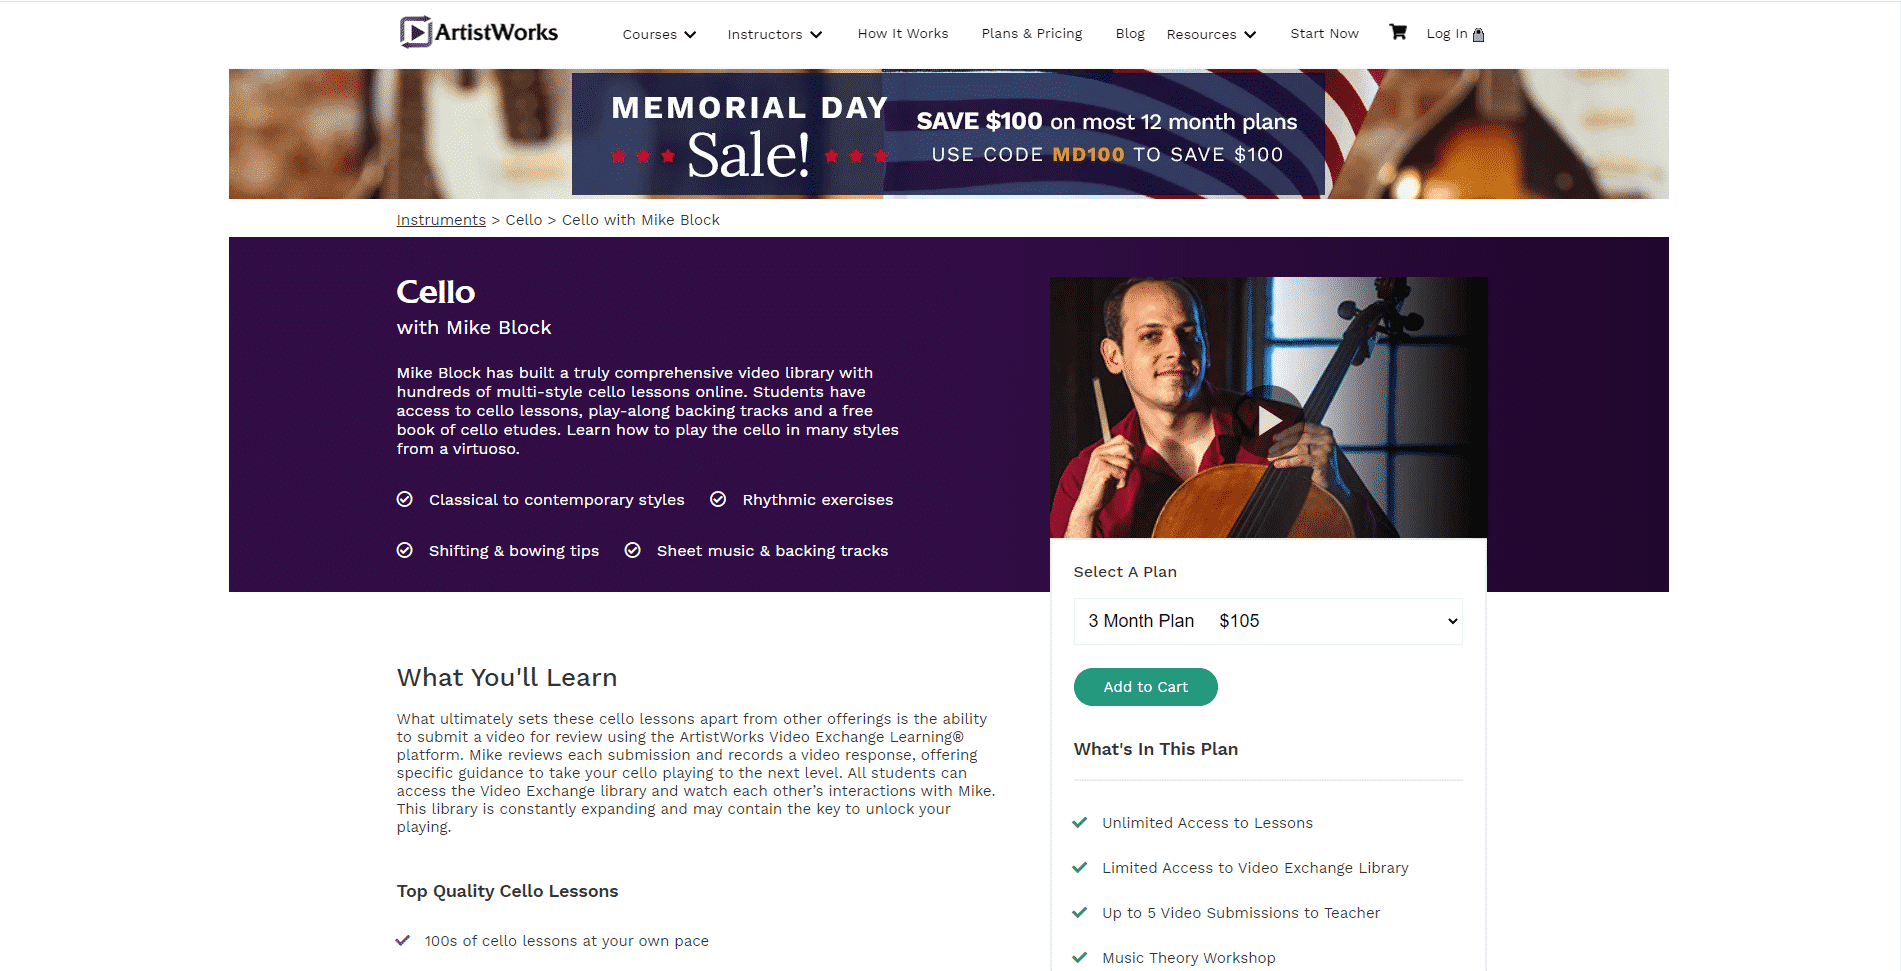 Artistworks Cello Lessons for Intermediate Online